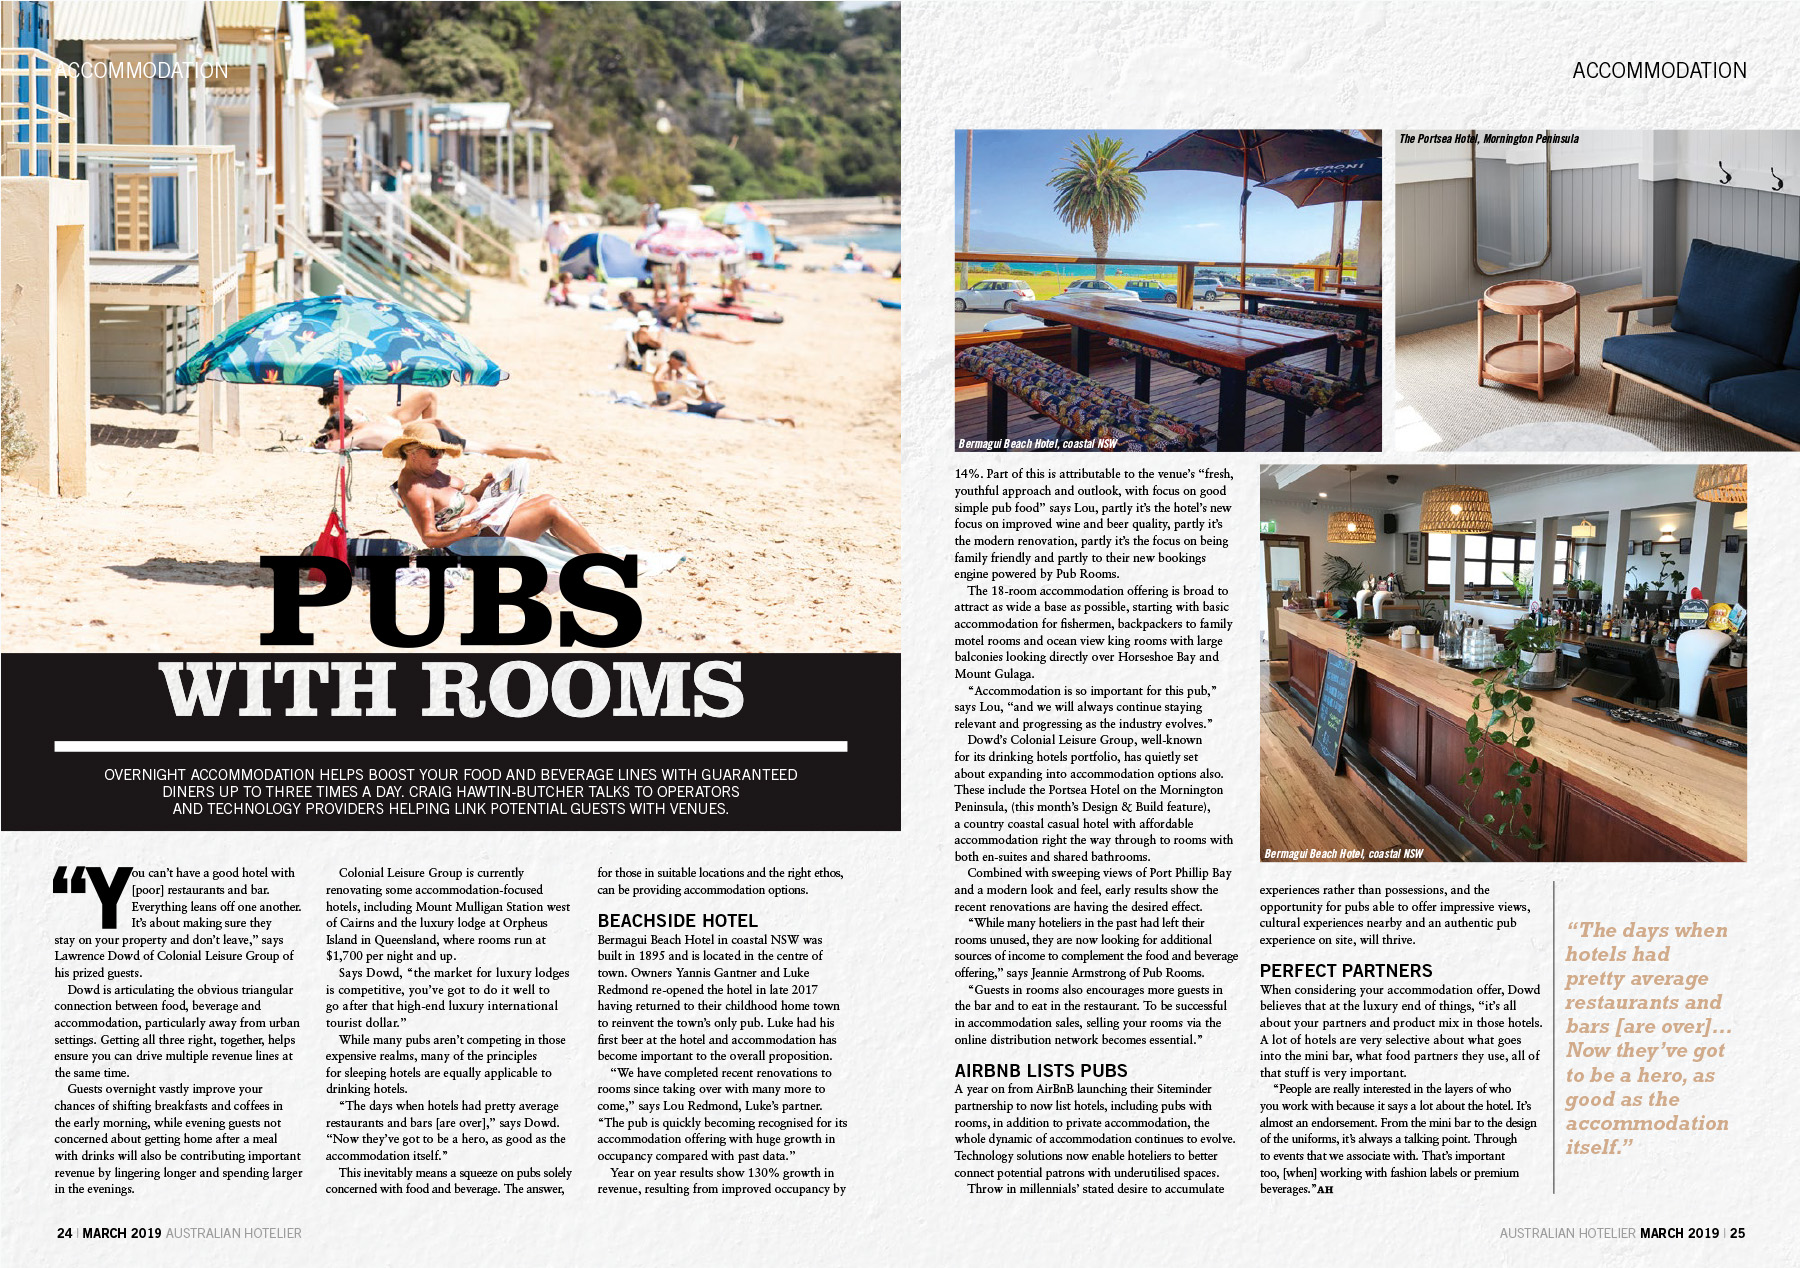 editorial-feature-australian-hotelier-pubs-with-rooms